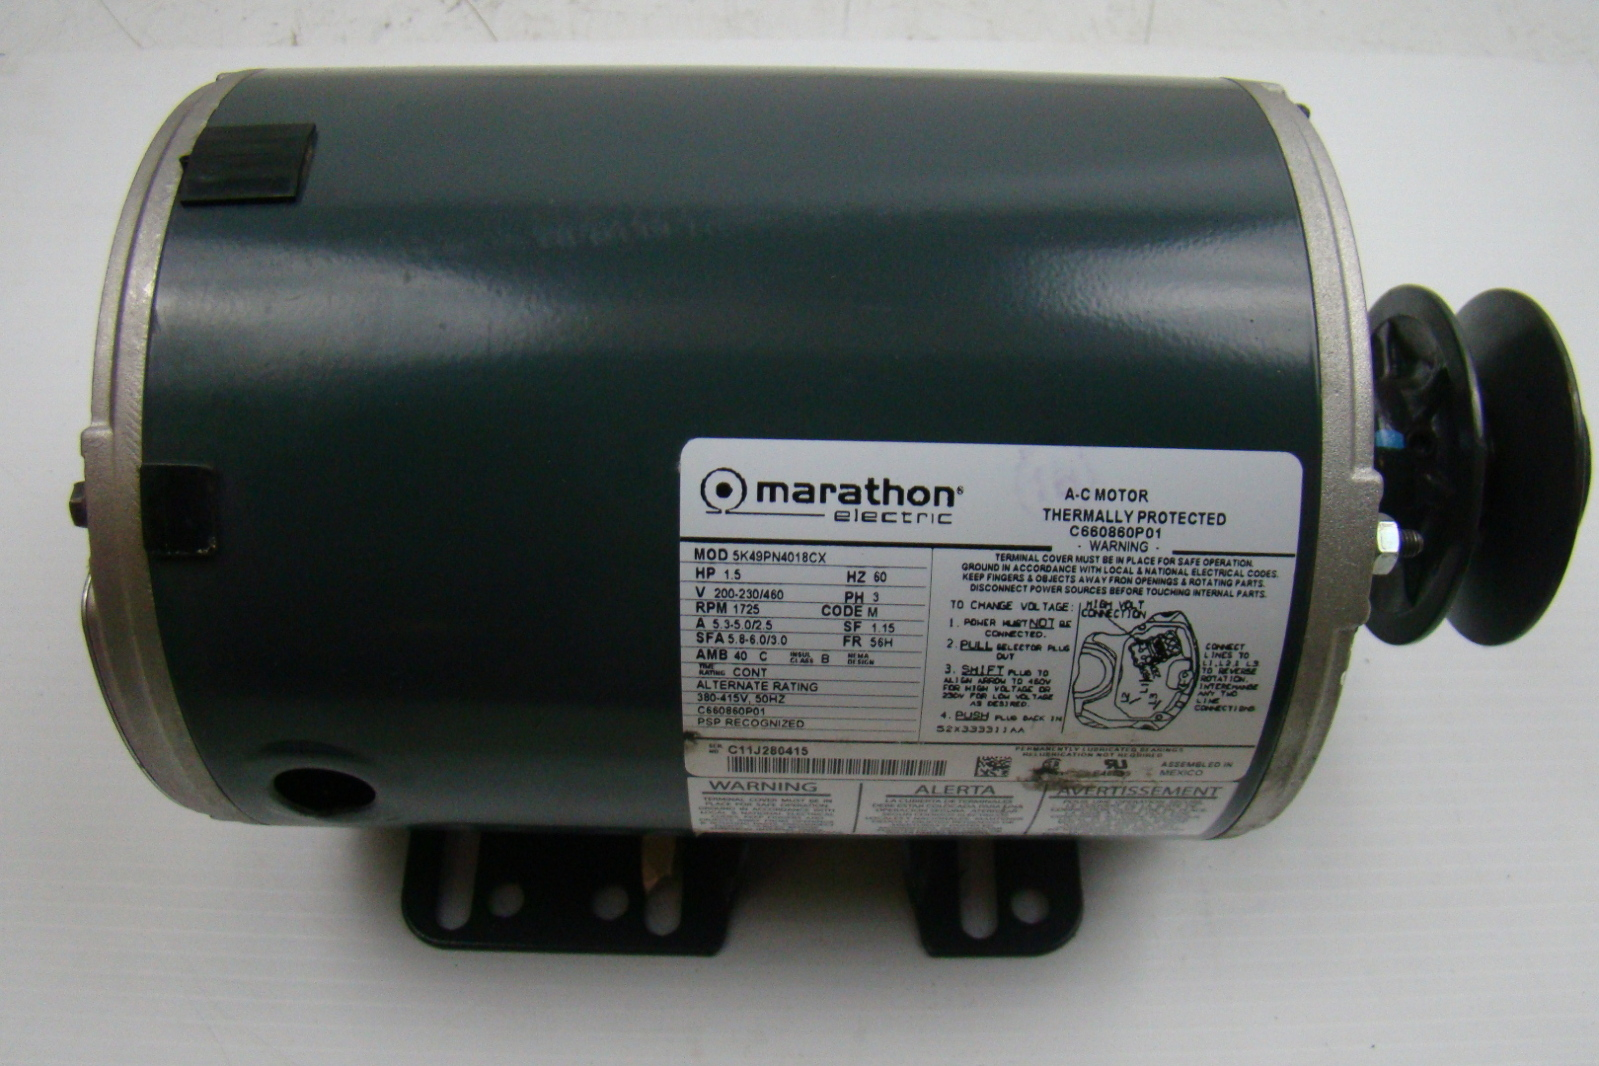 Marathon electric motor 1 1 2 hp 200 230 460v 5k49pn4018cx for One horsepower electric motor